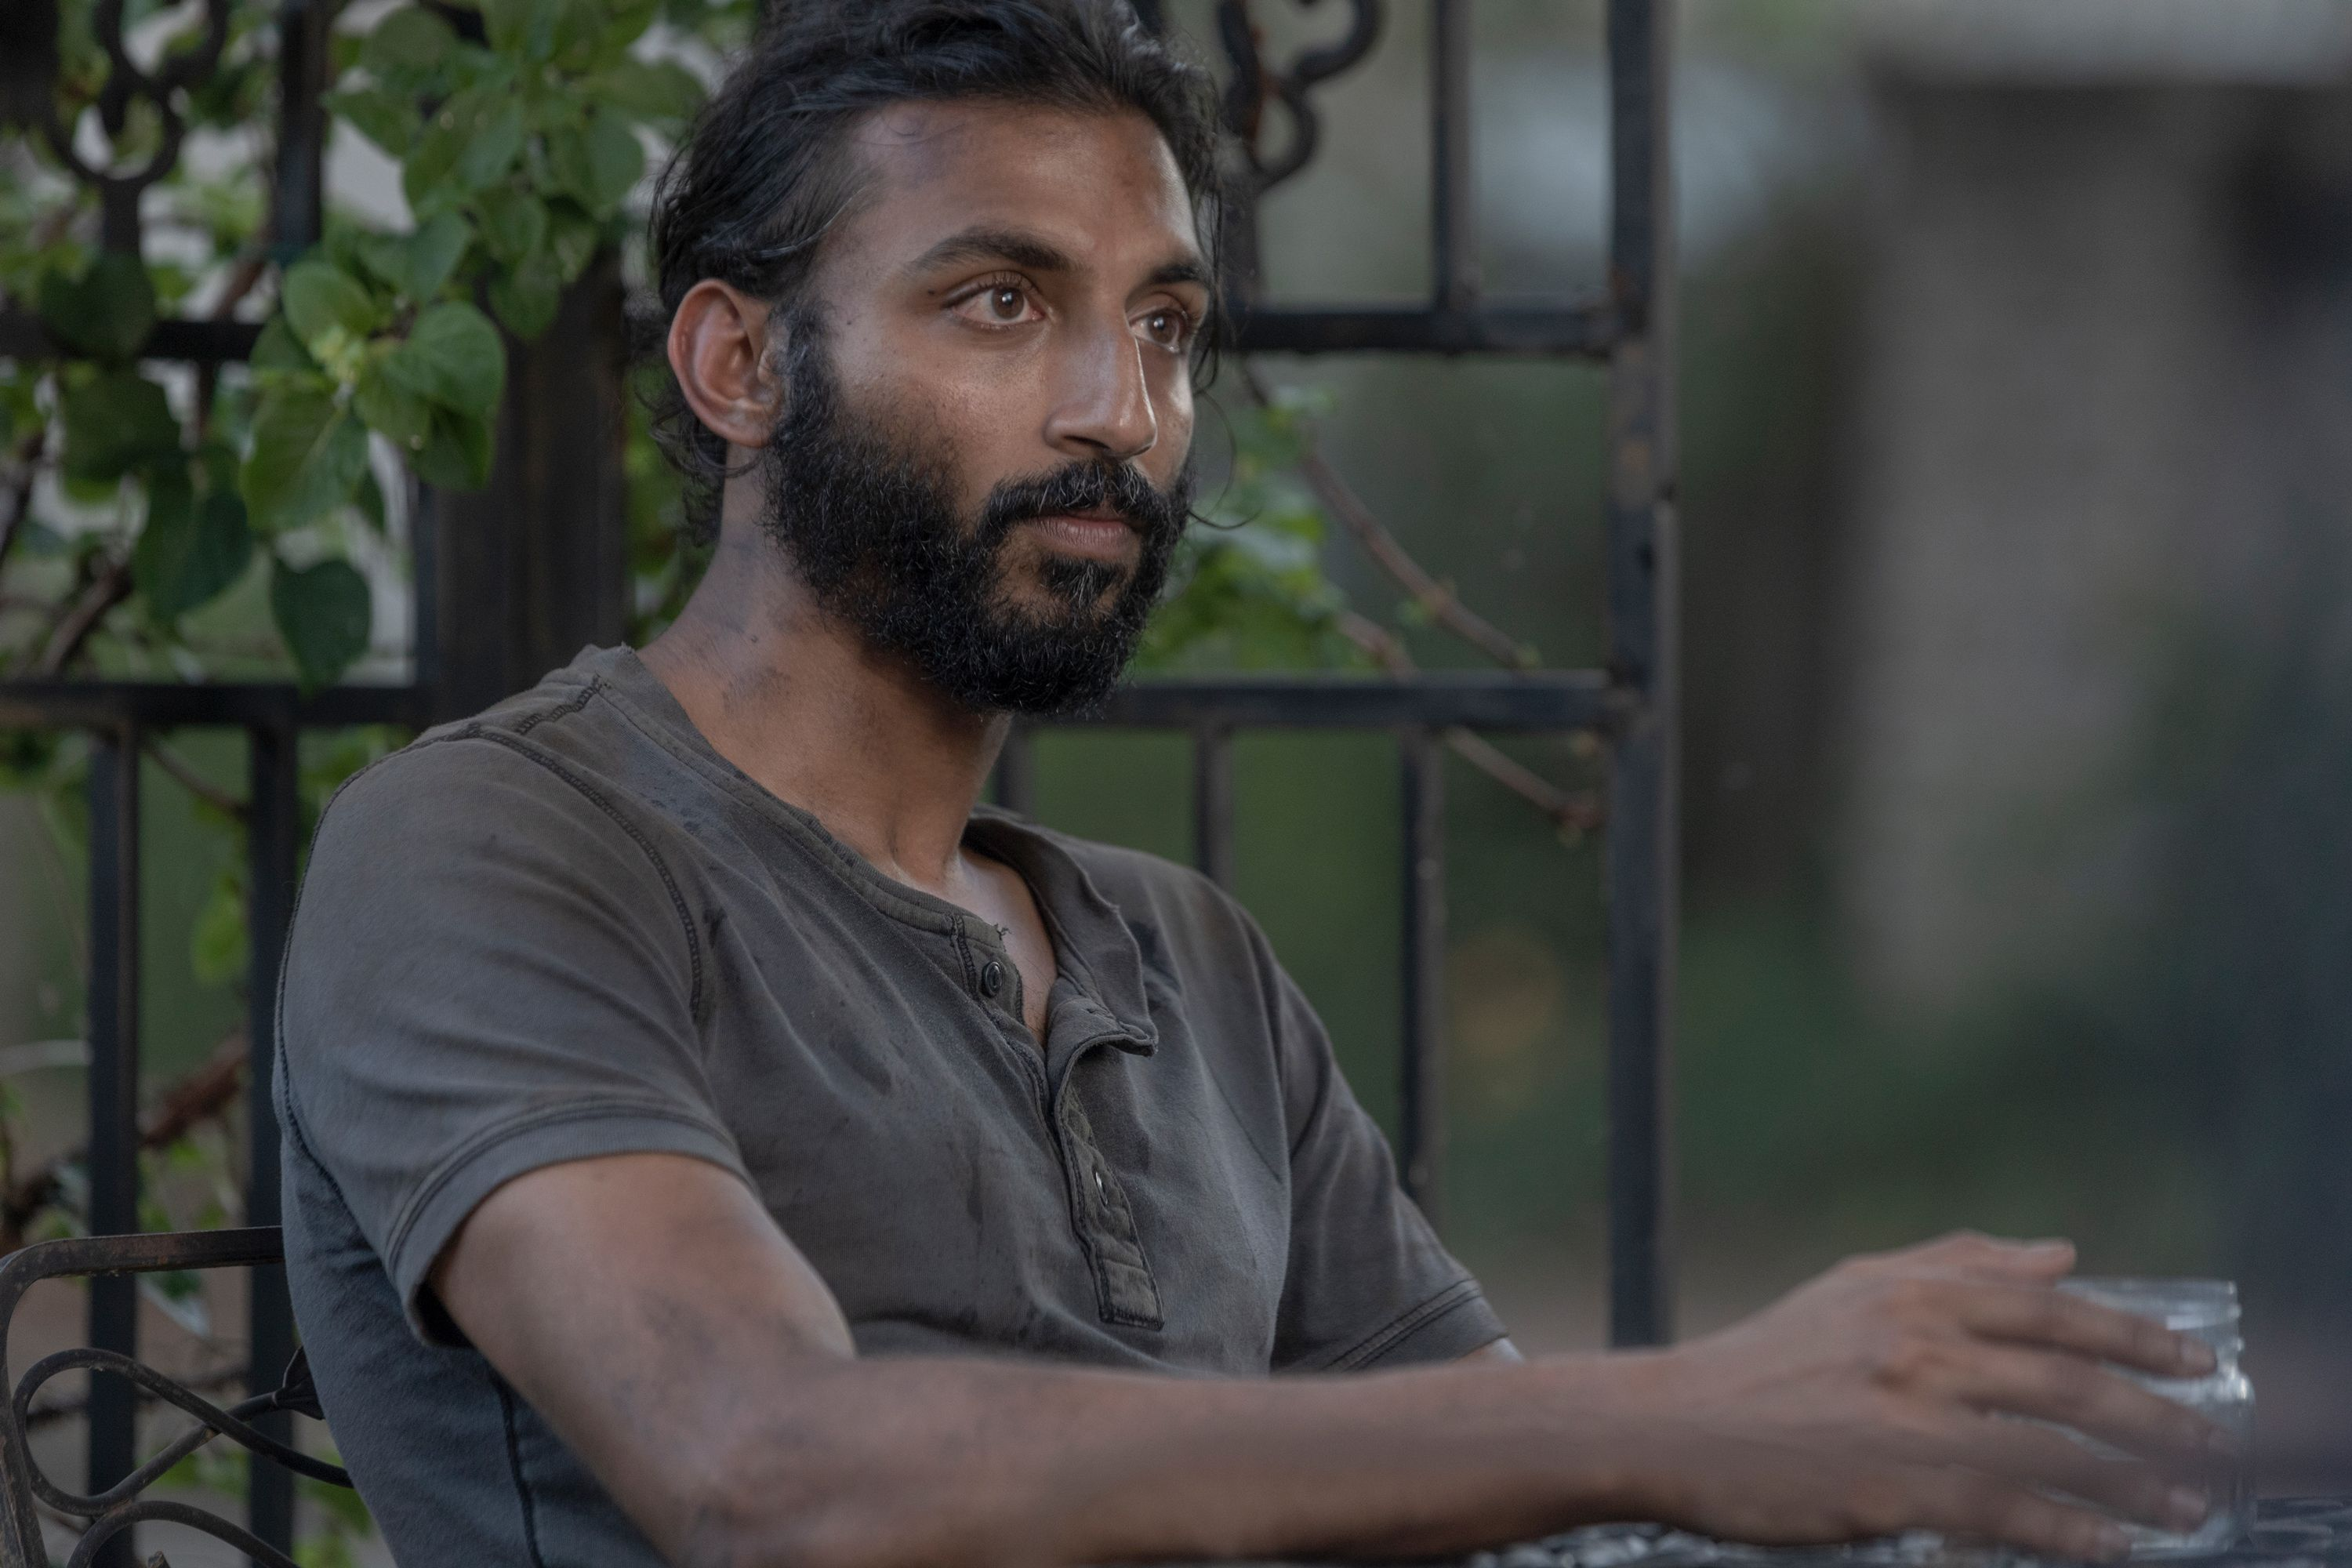 The Walking Dead fans have a disturbing theory about Siddiq and the pikes deaths